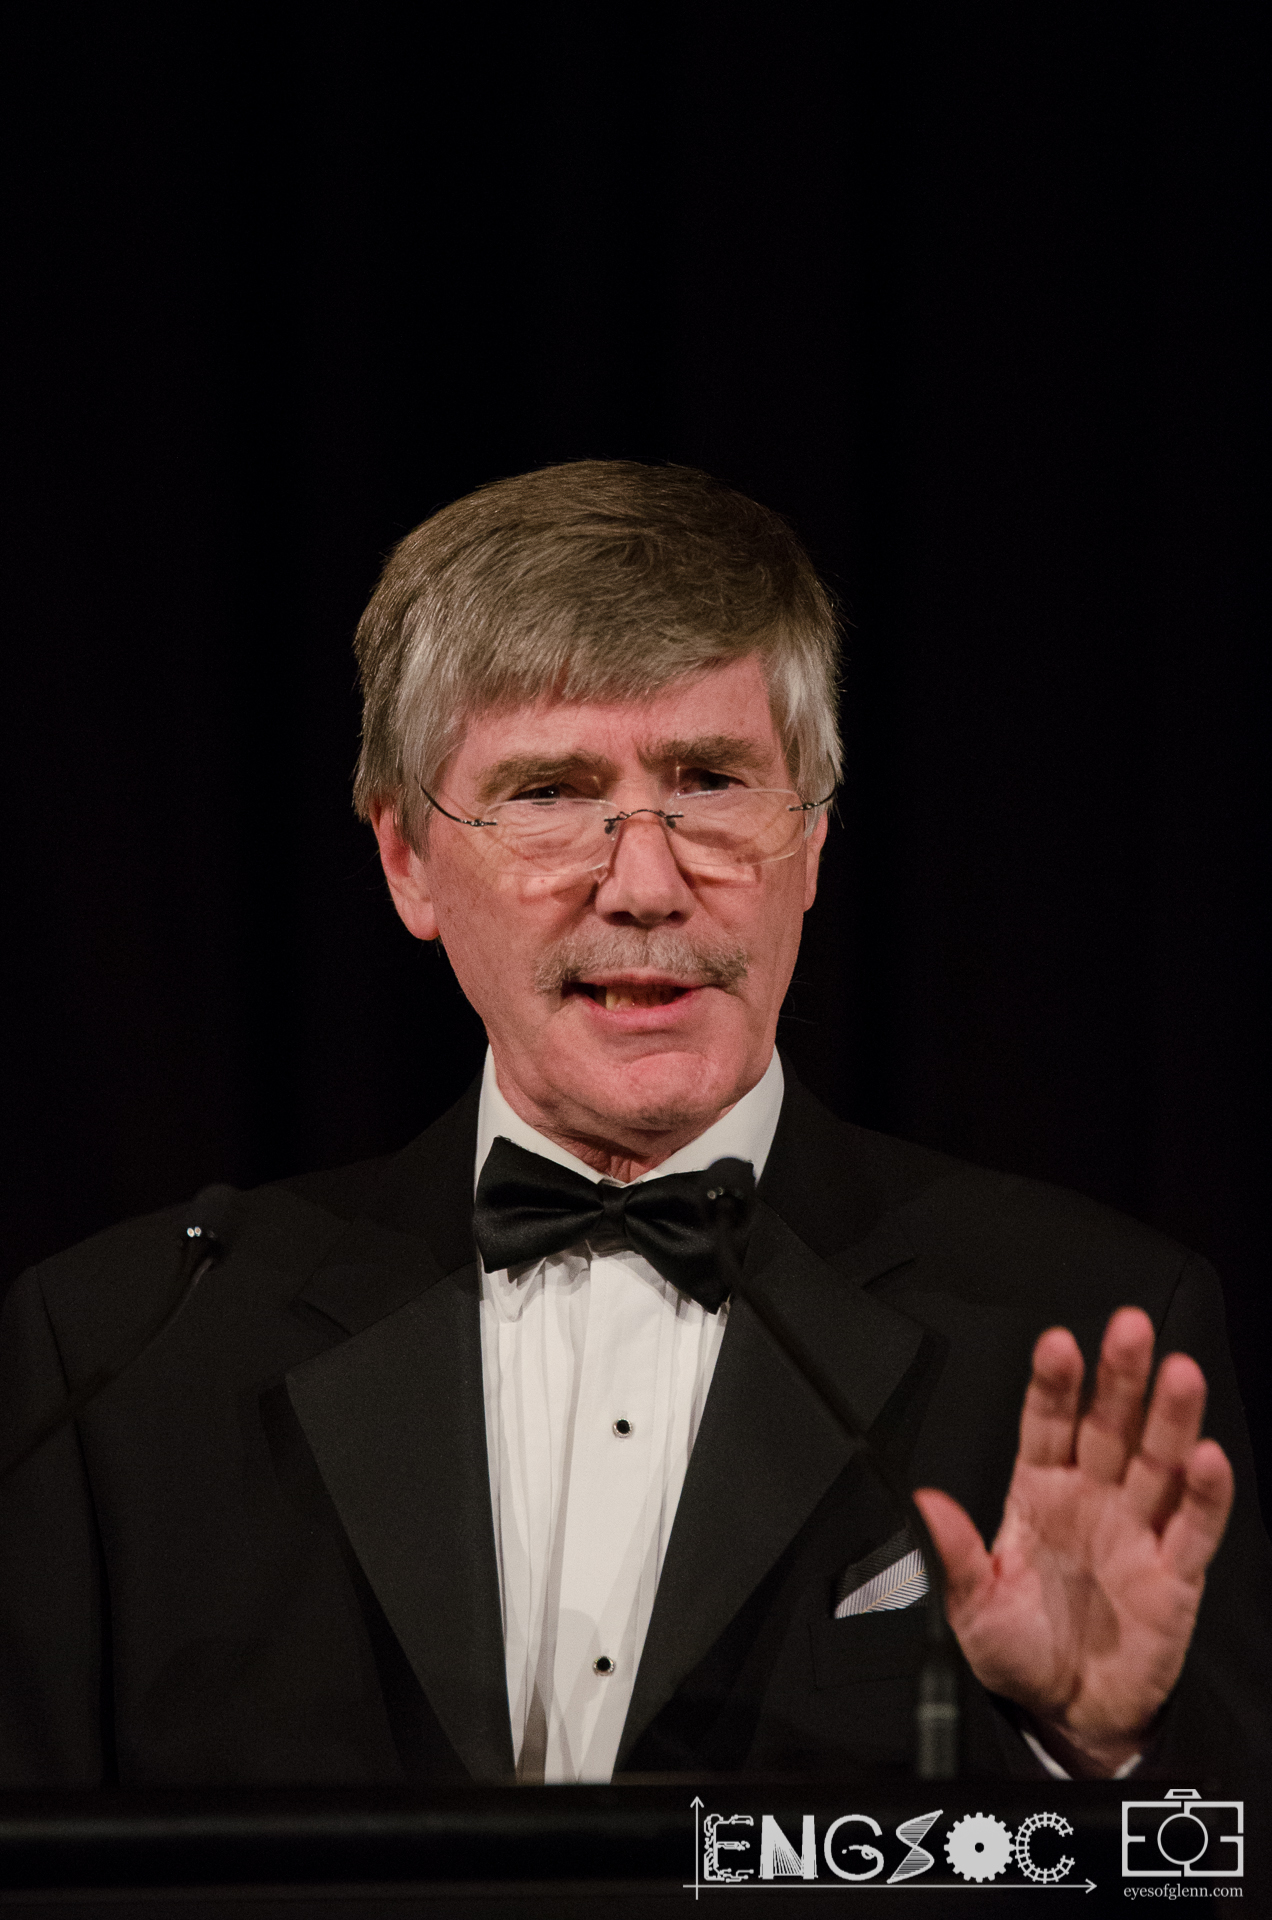 Graham Davies speaks at the UNSW Engineering Ball 2014